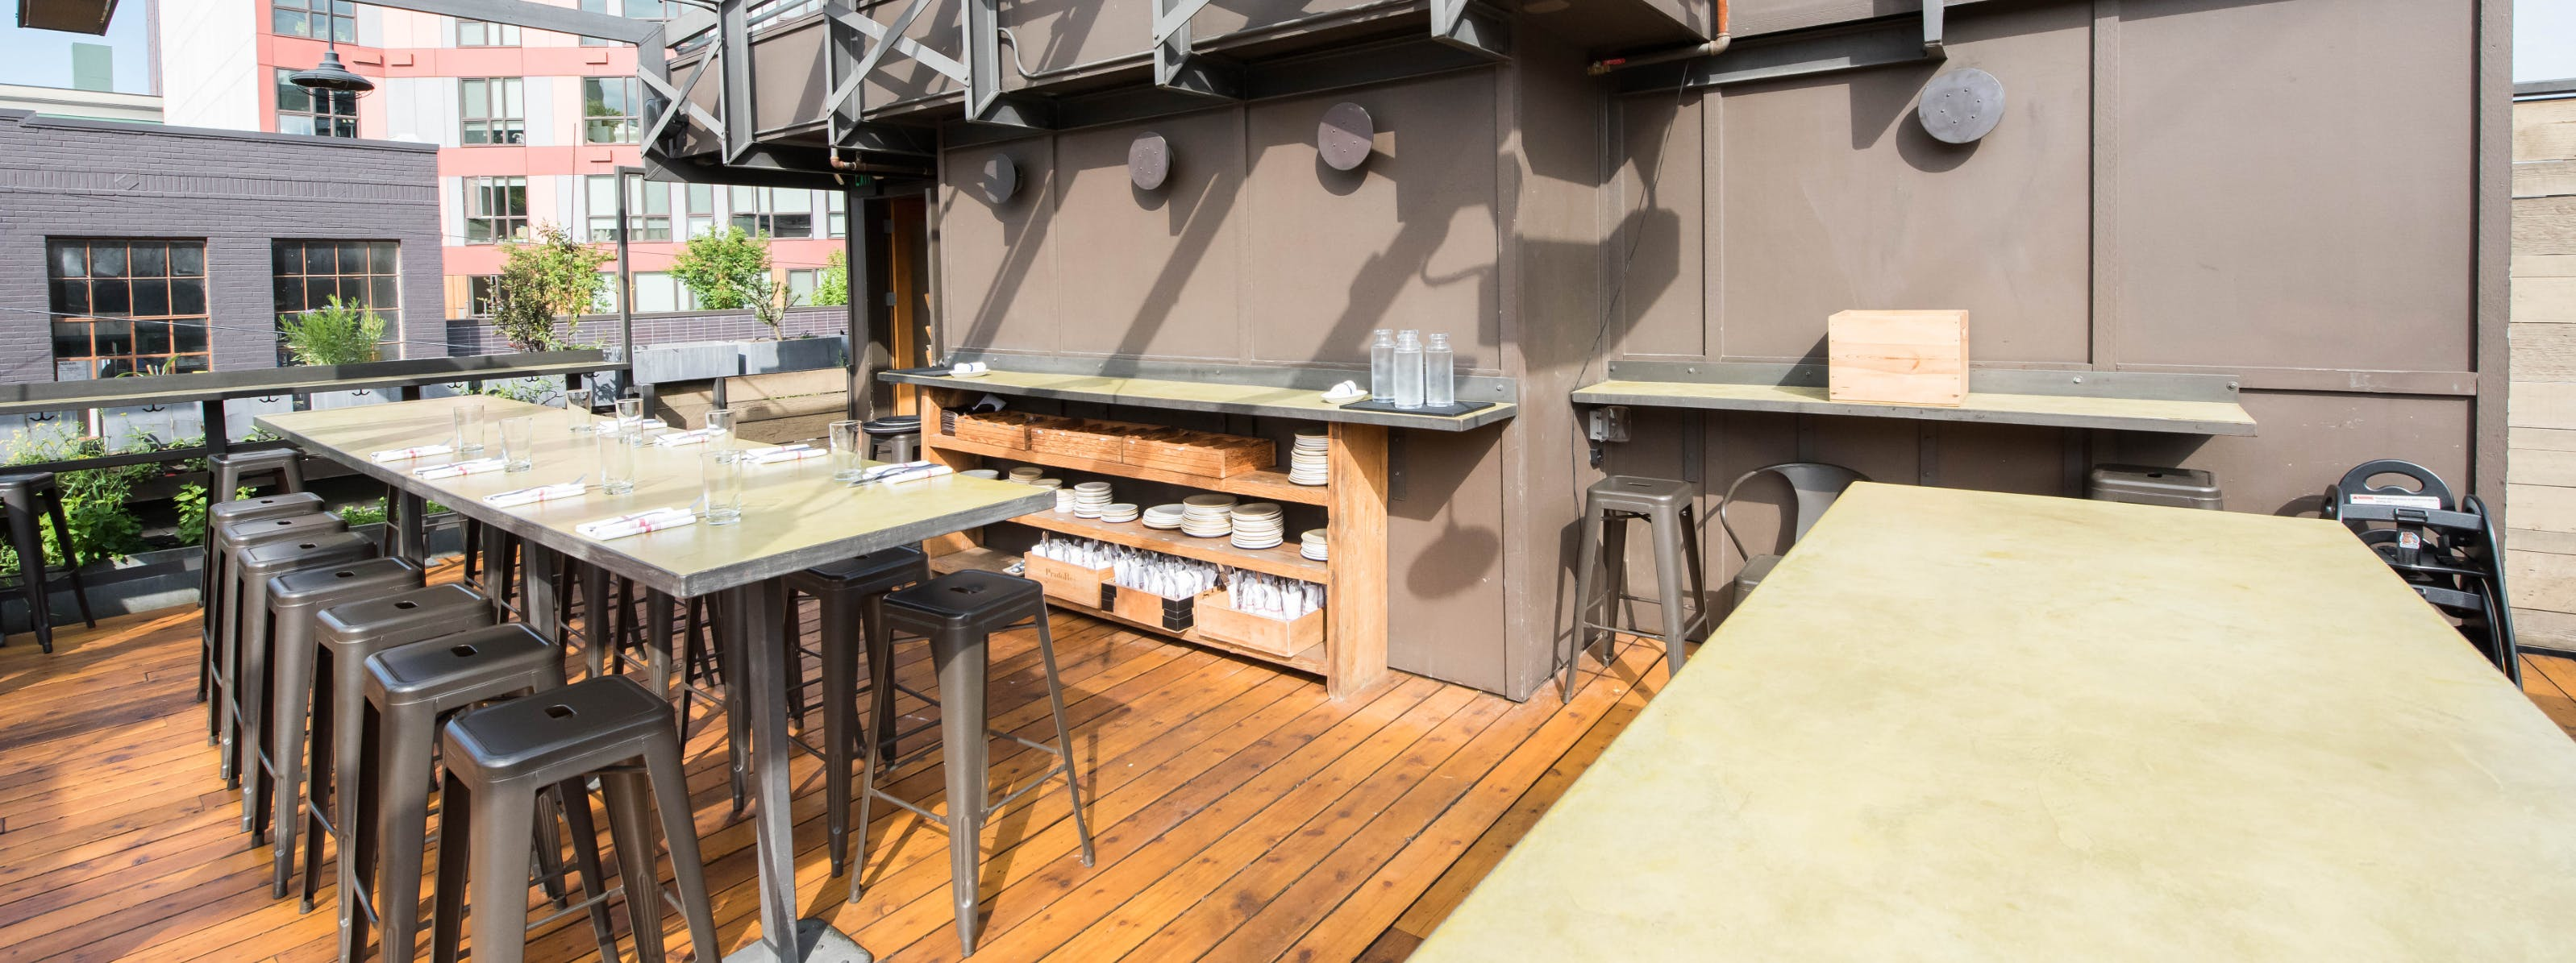 5 Great Patios For Brunch This Weekend - Seattle - The Infatuation